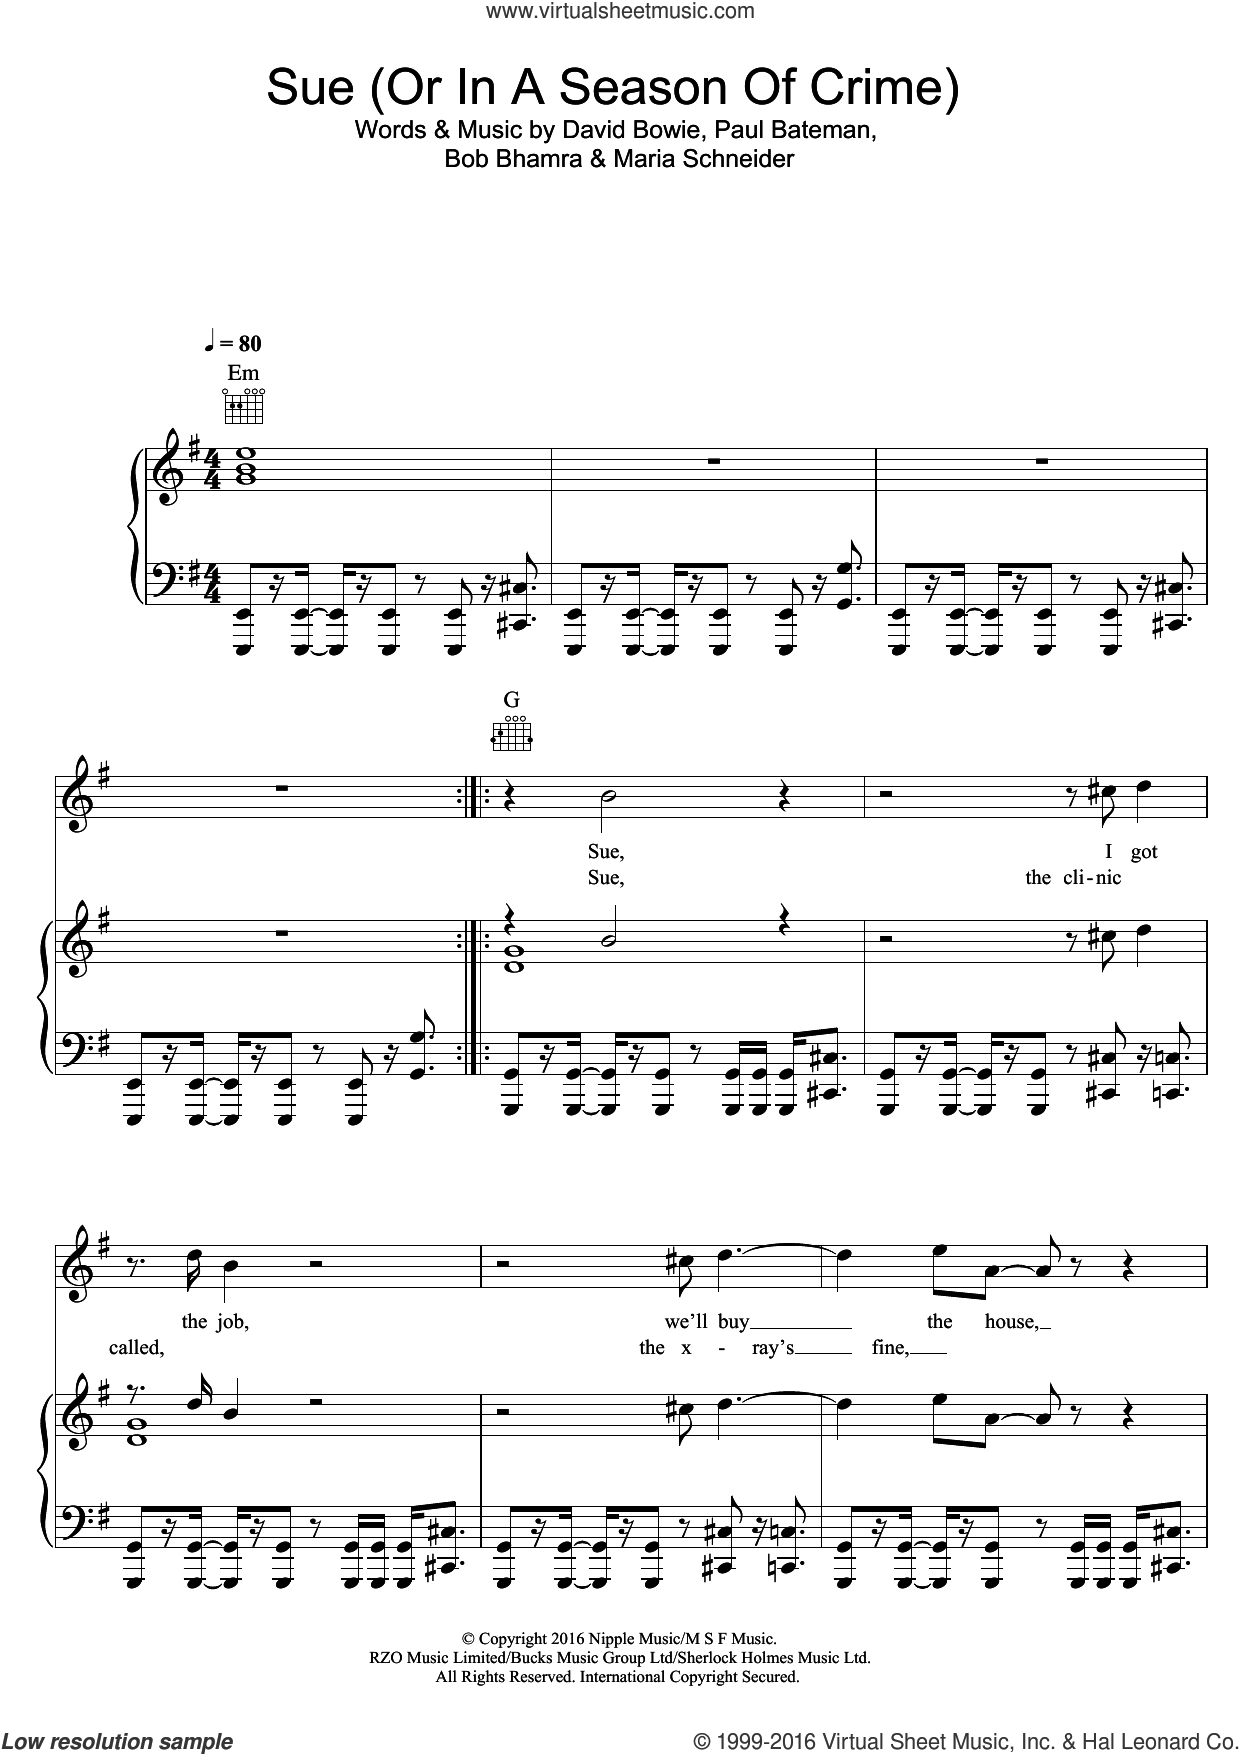 Sue (Or In A Season Of Crime) sheet music for voice, piano or guitar by David Bowie, Bob Bhamra, Maria Schneider and Paul Bateman, intermediate skill level